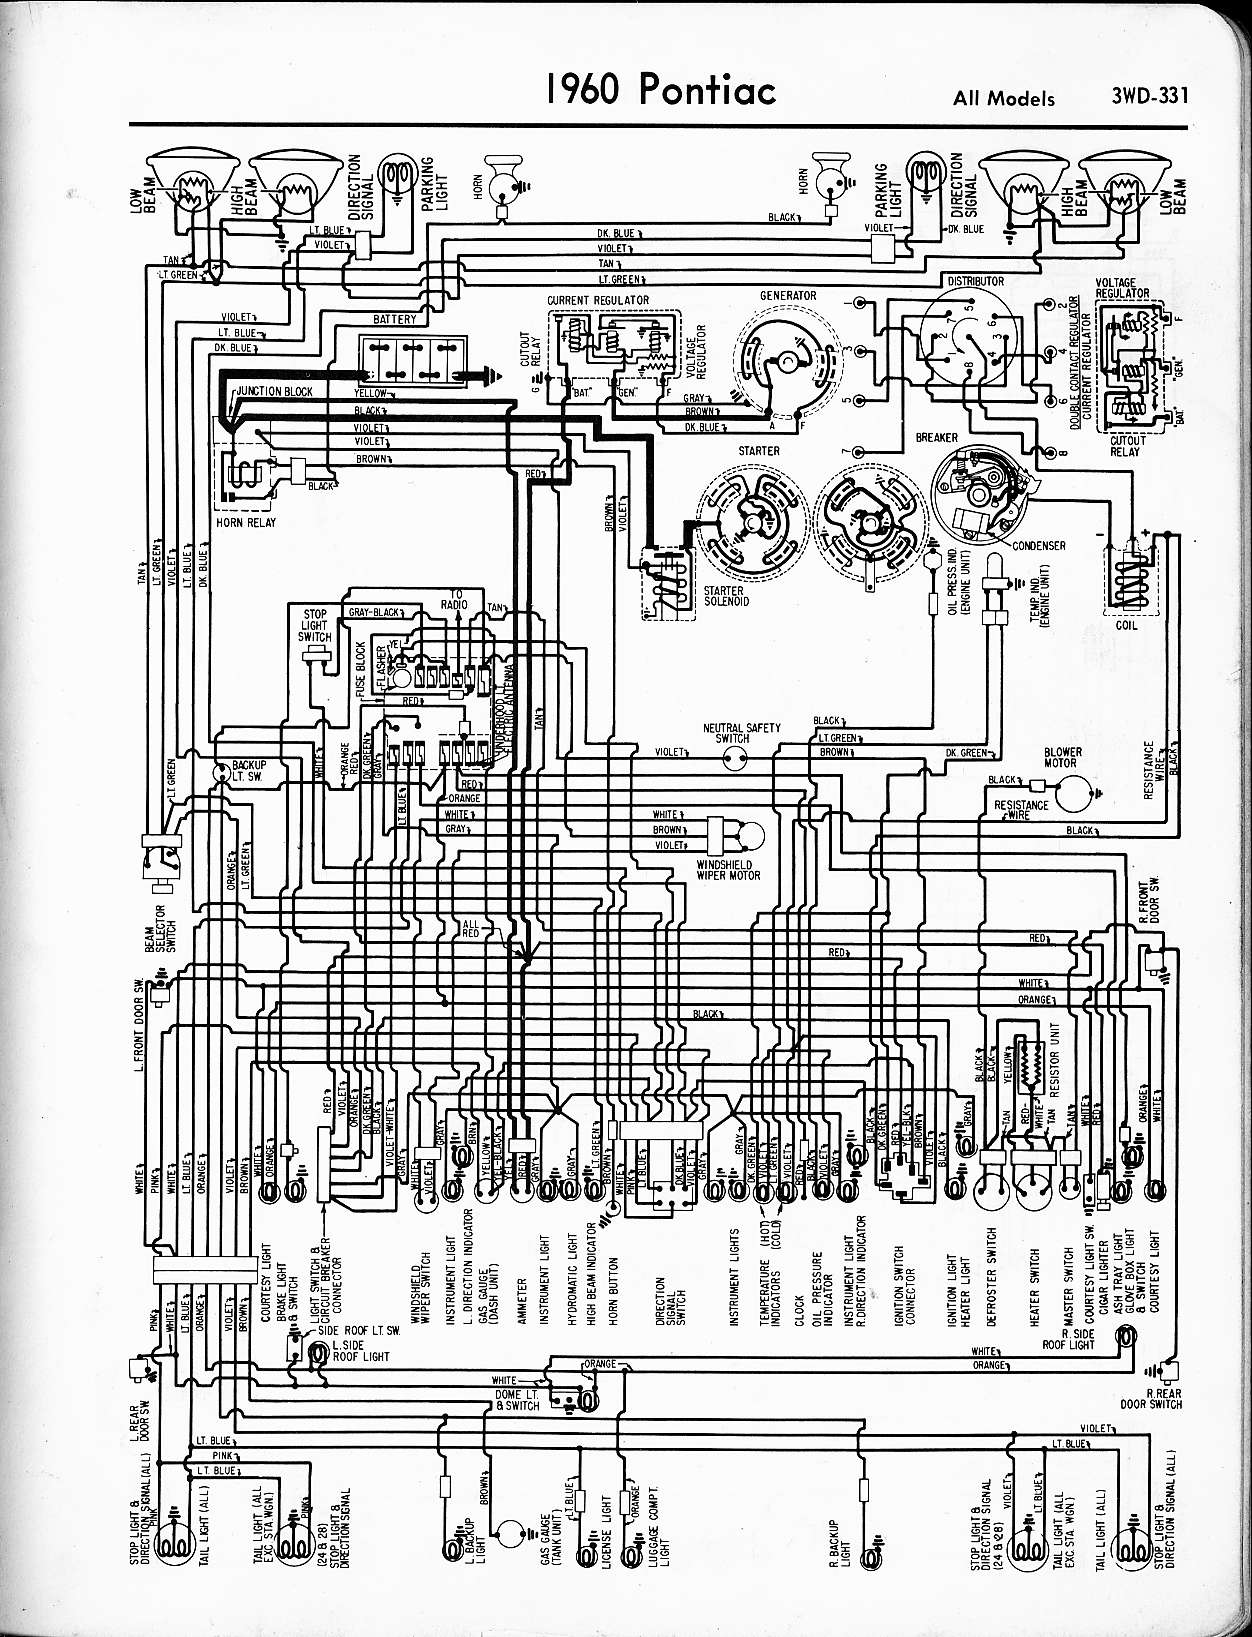 2002 Pontiac Bonneville Wiring Diagram Wiring Diagram Online 2002 Pontiac  Bonneville Power Window Wiring Diagram 2002 Pontiac Bonneville Wiring  Diagram